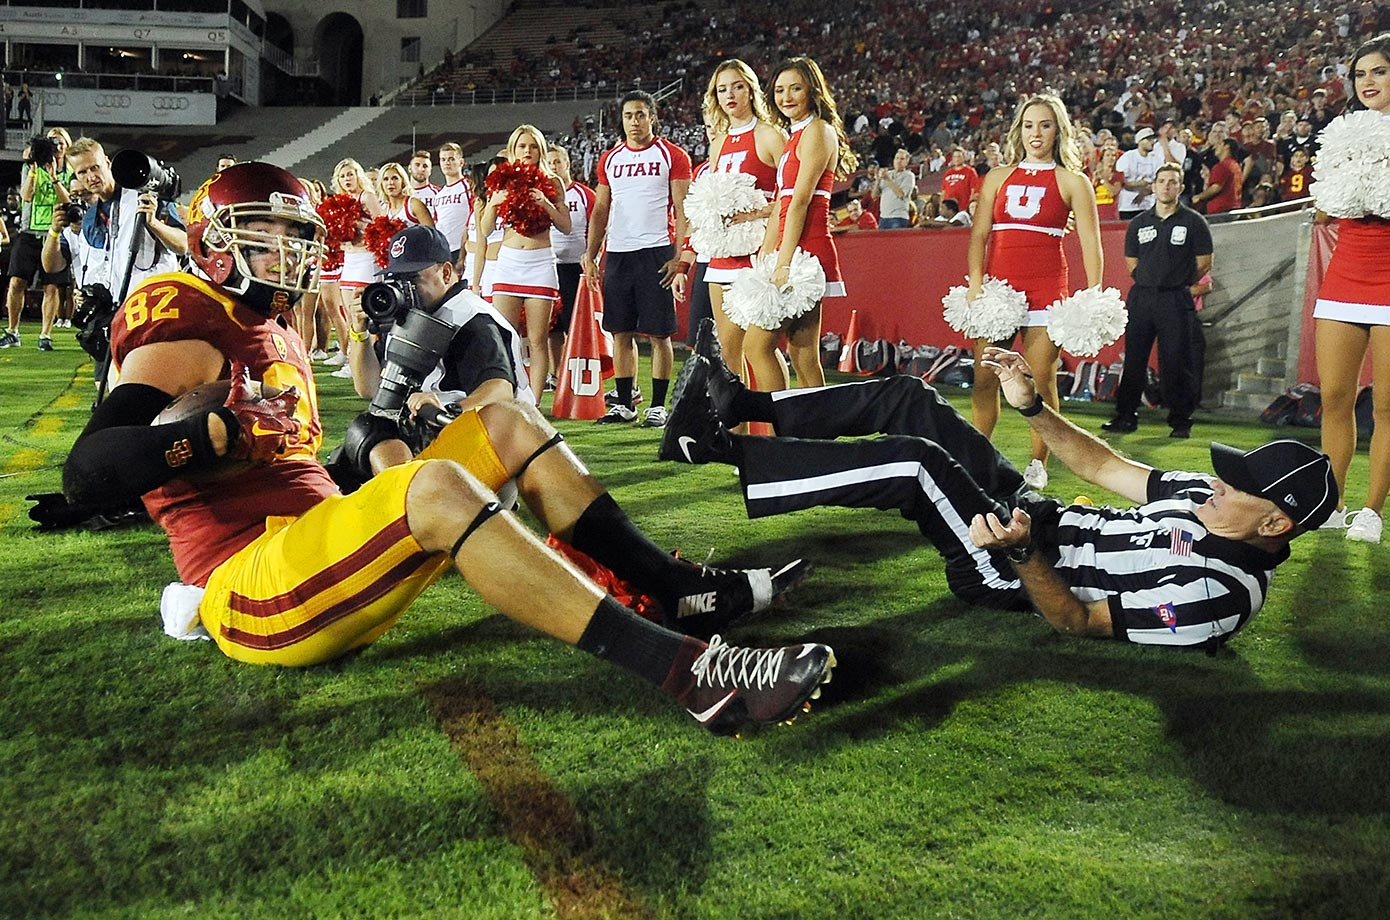 Tyler Petite of USC takes out a referee after being forced out of bounds in a game against Utah.